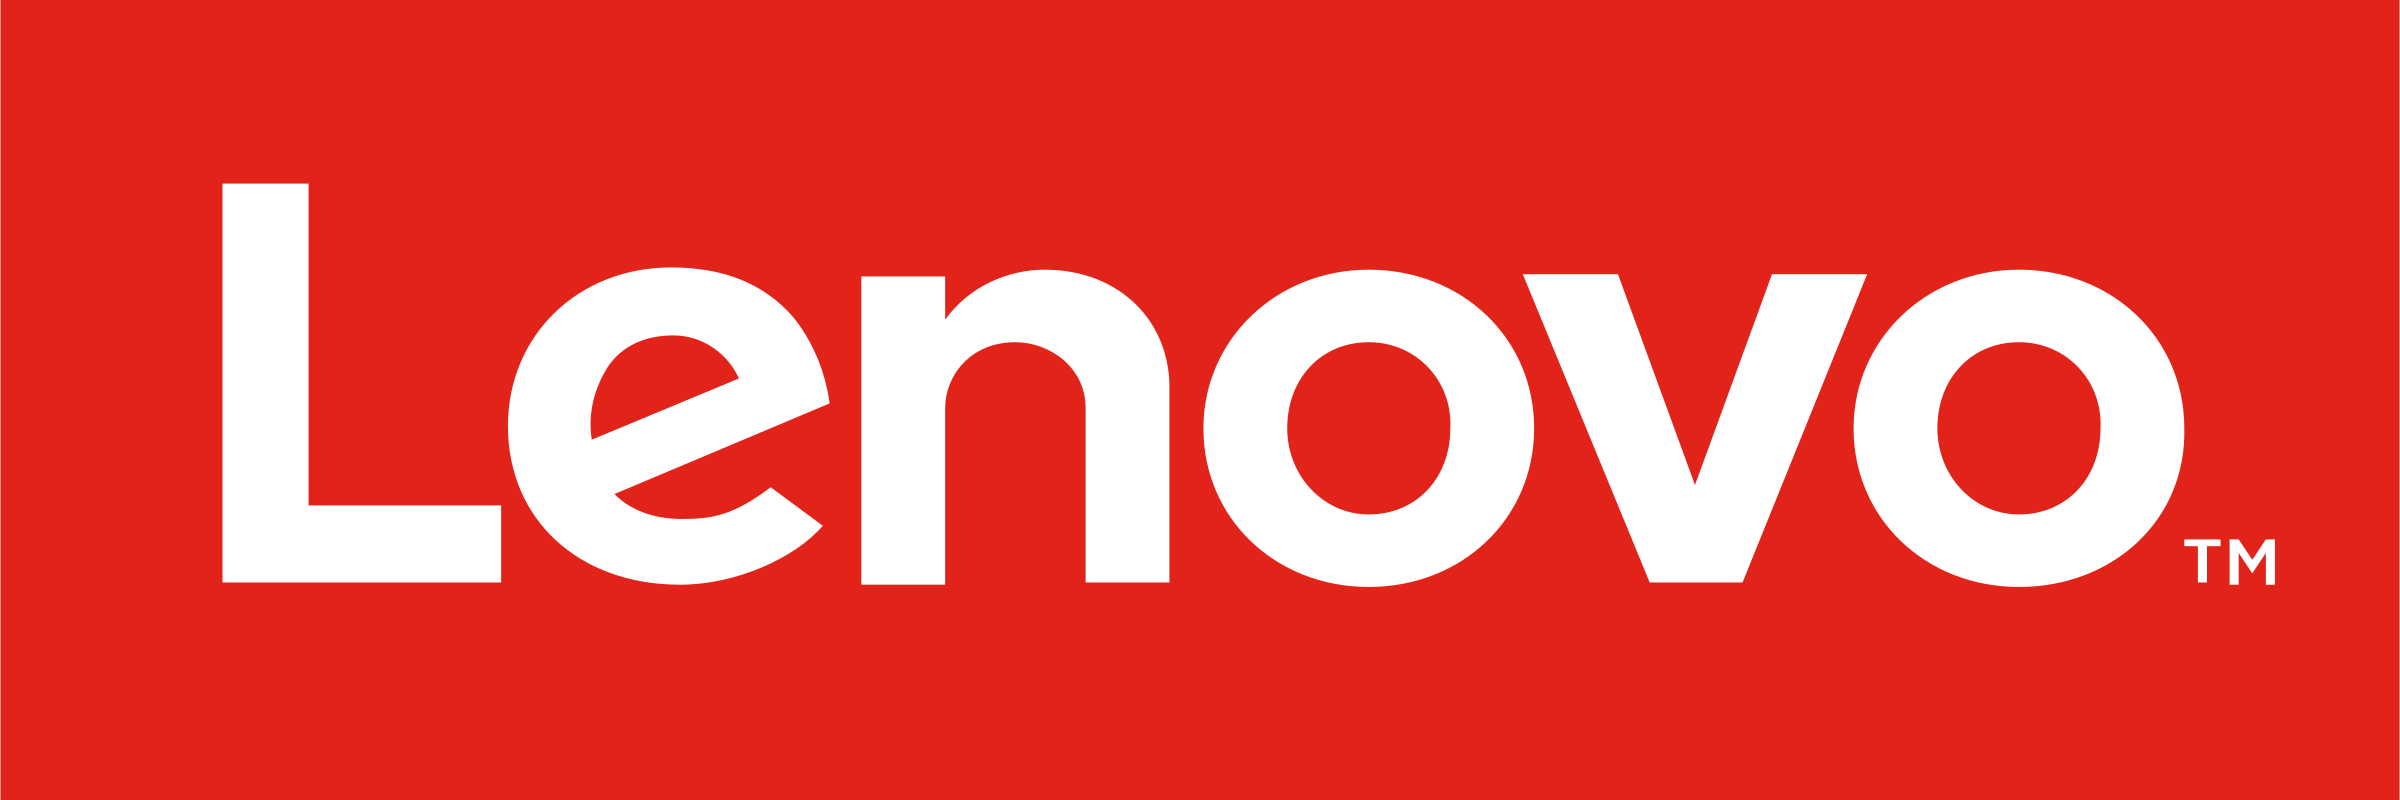 LENOVO SERVICE CENTER IN CHENNAI | LENOVO LAPTOP | LENOVO MOBILE | LENOVO TABLET